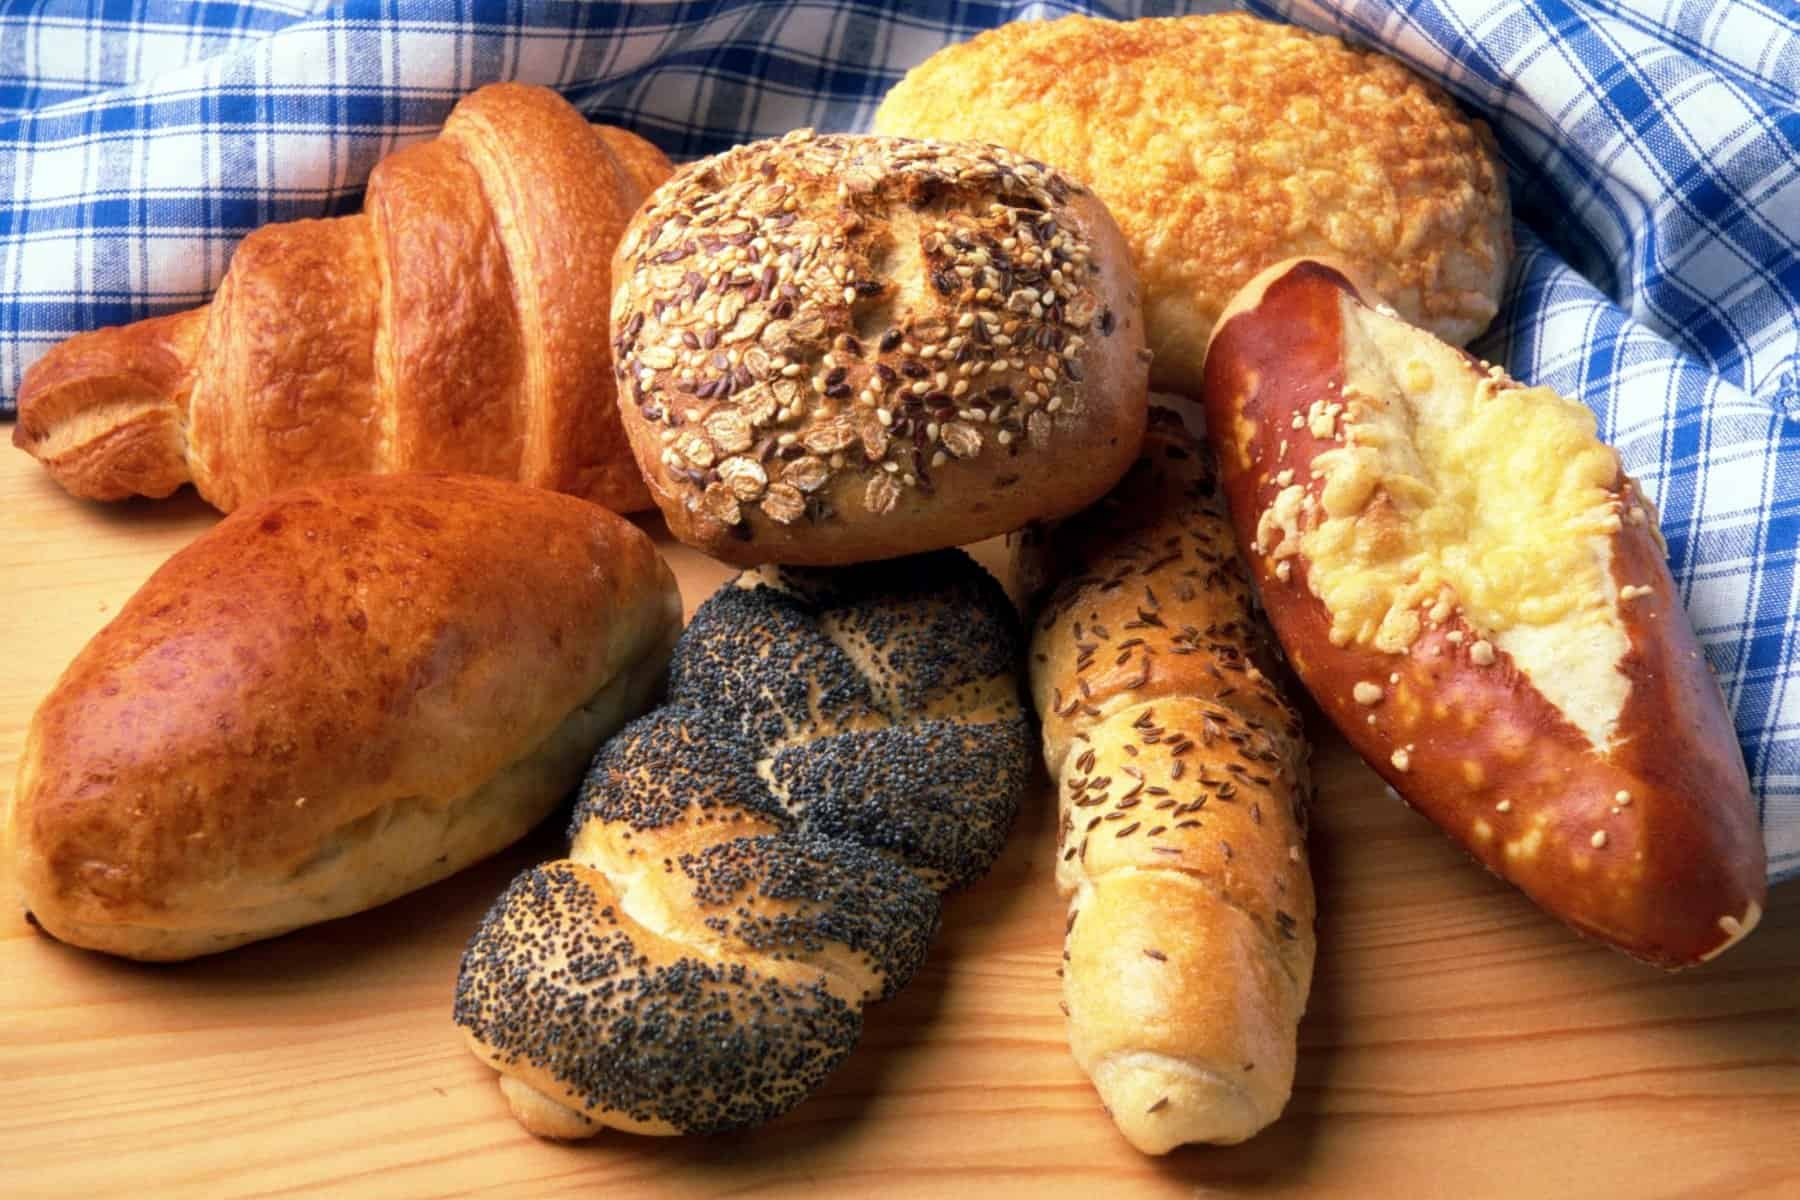 Bakery Equipment - What you need to know